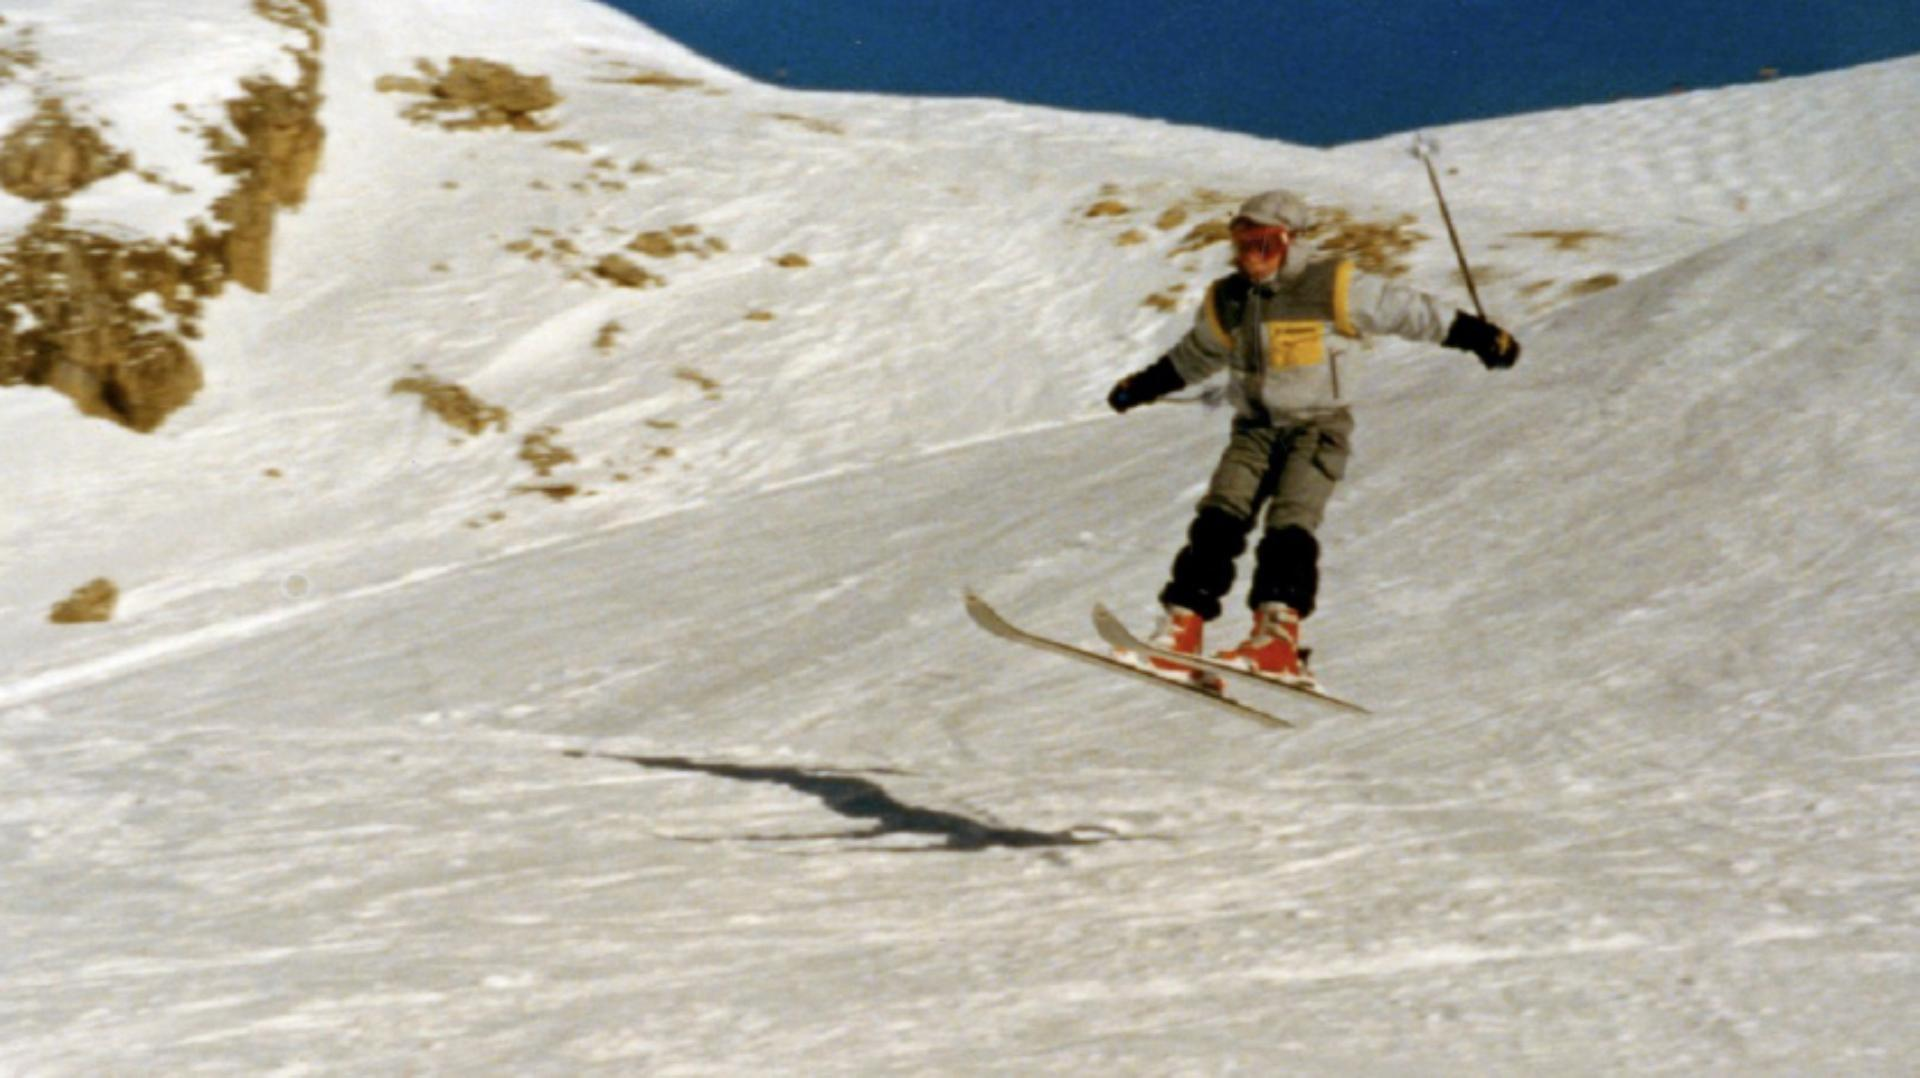 A young Dyson boy on a ski slope, making a jump, with ski poles in the air